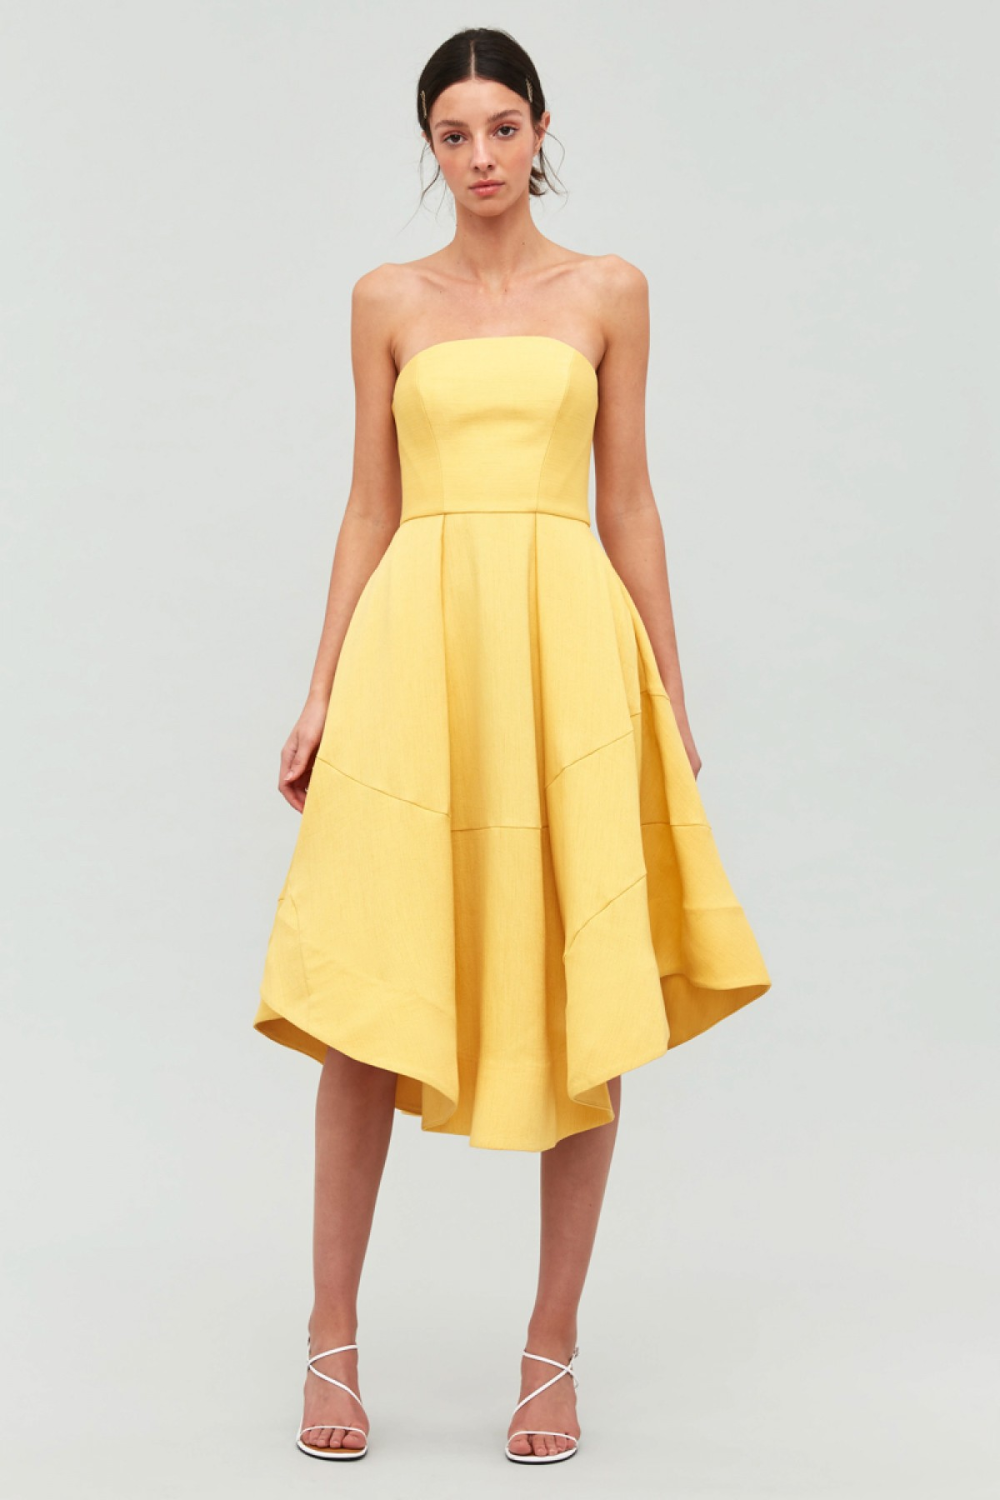 Beyond Control Dress Gold C Meo Collective Bnkr Yellow Strapless Dress Prom Dresses Yellow A Line Dress [ 1500 x 1000 Pixel ]